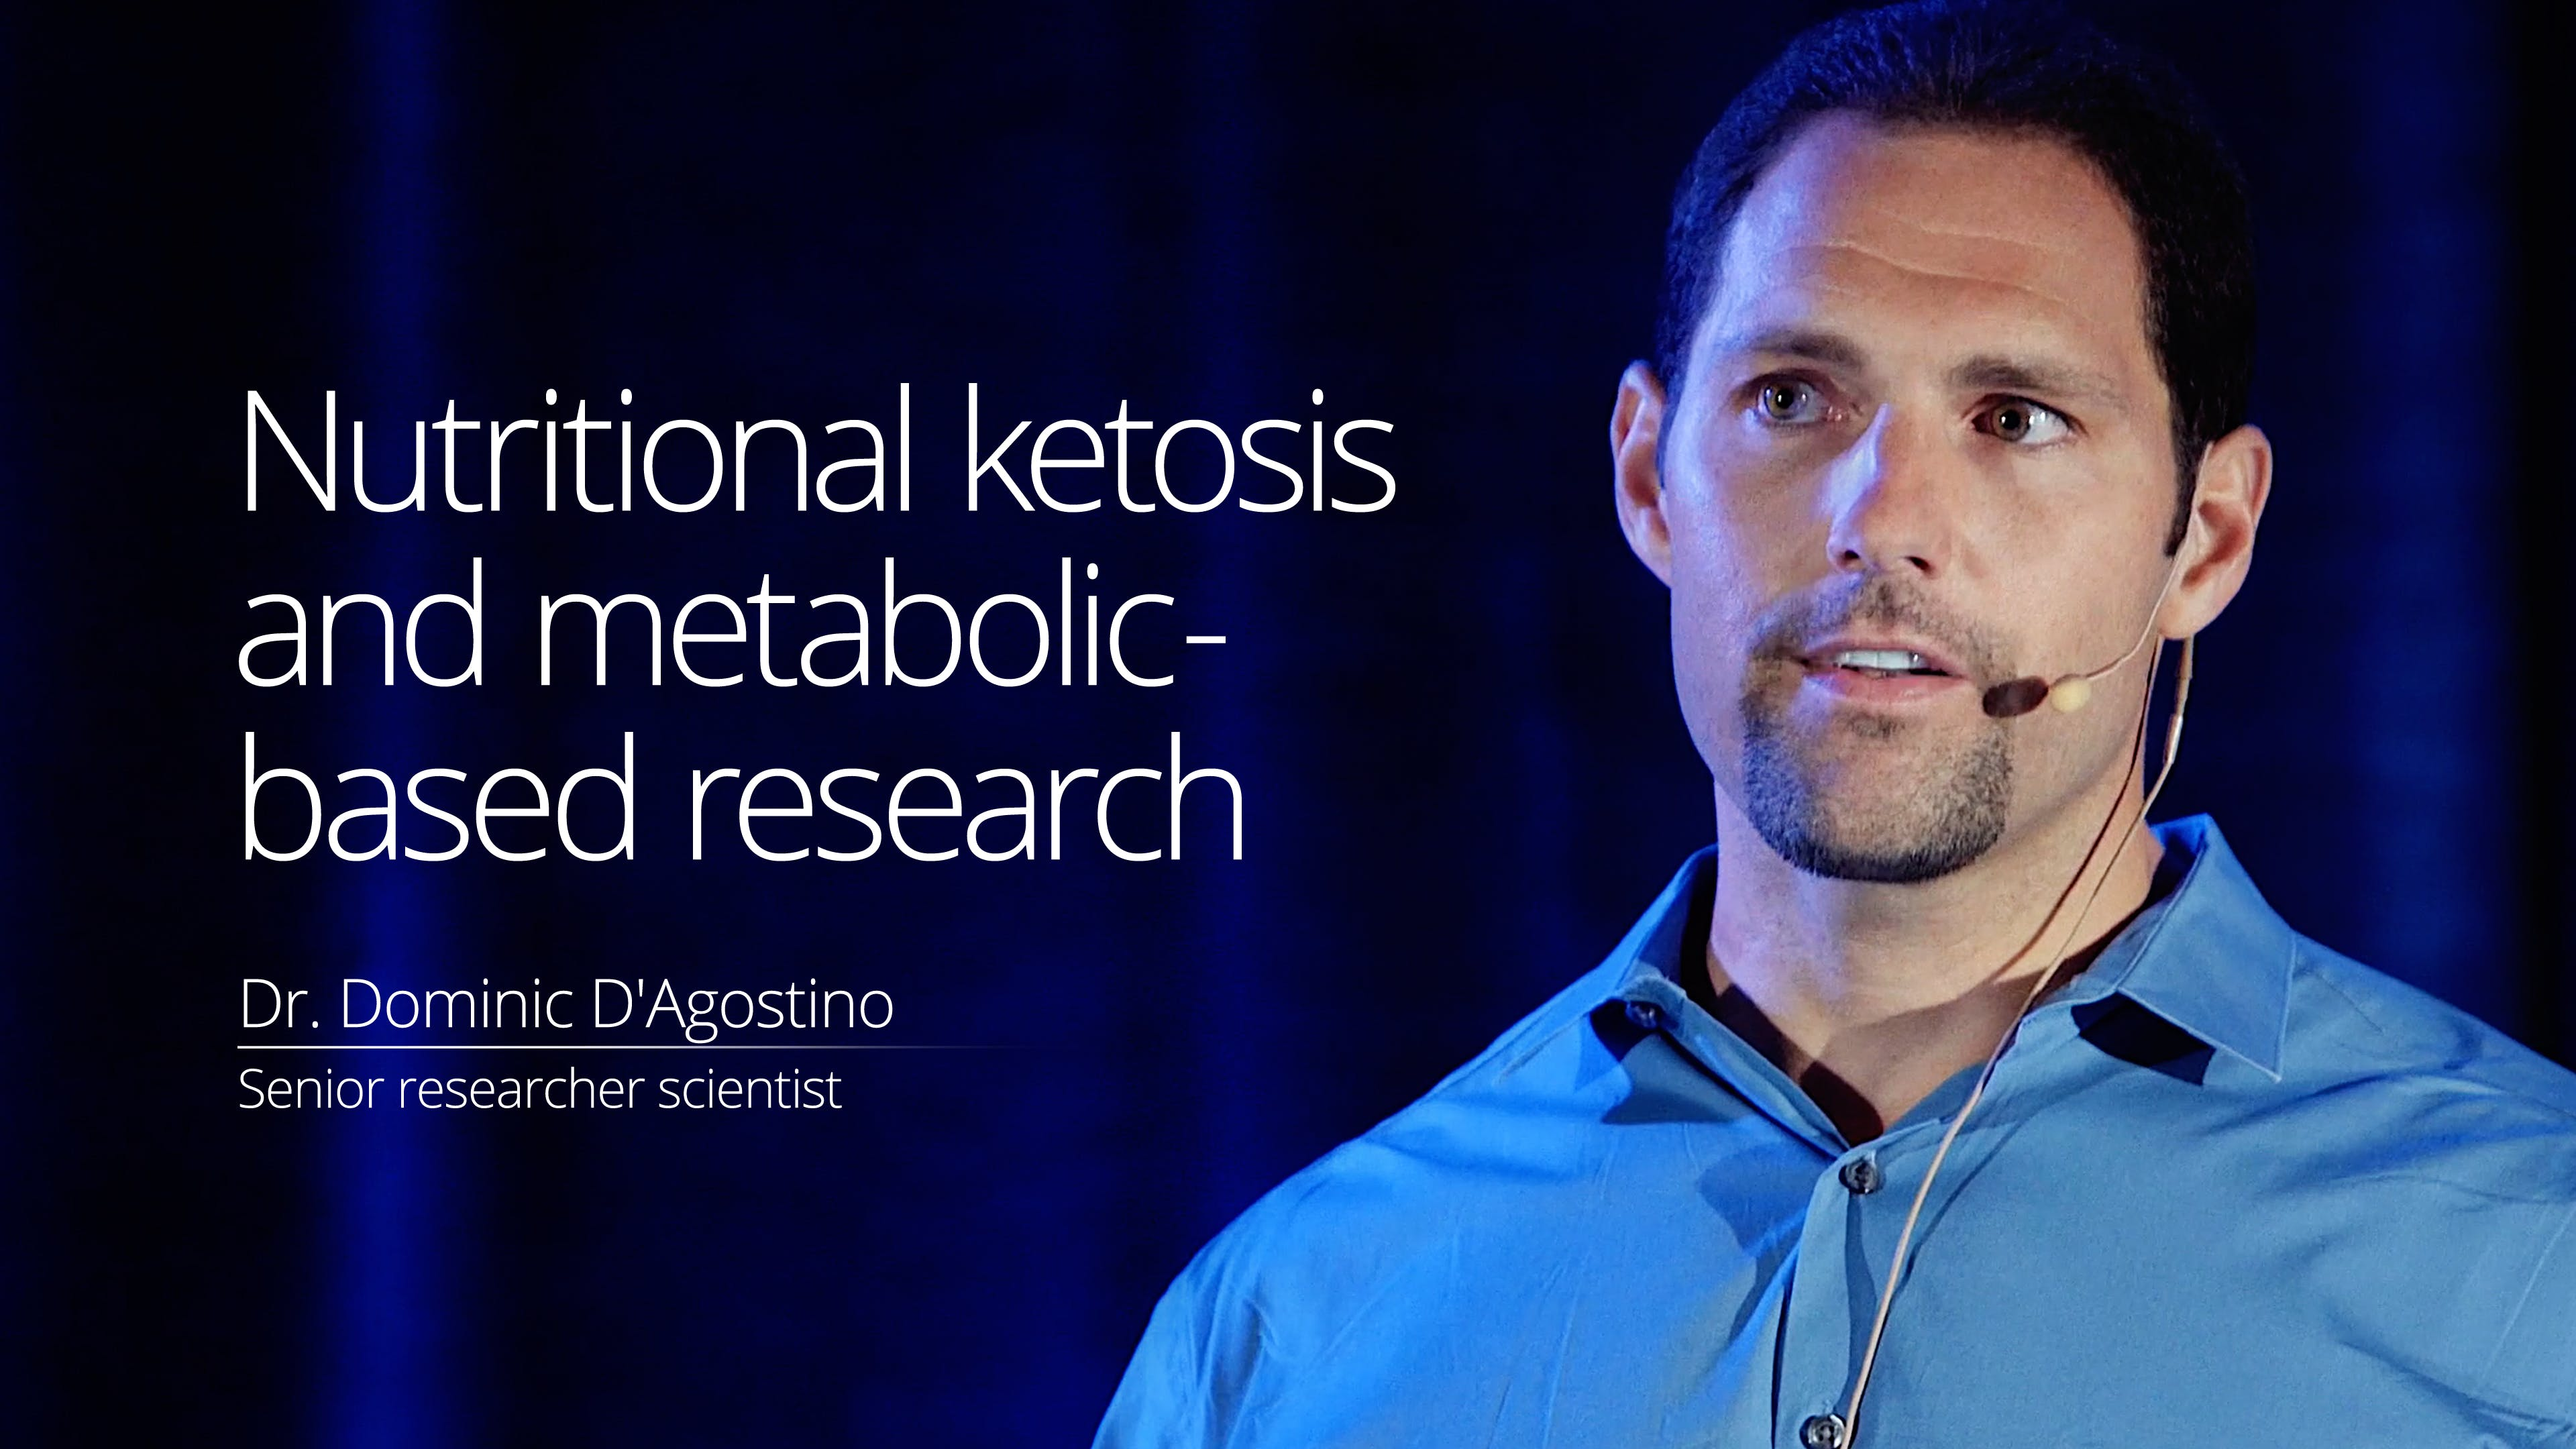 Nutritional ketosis and metabolic-based research